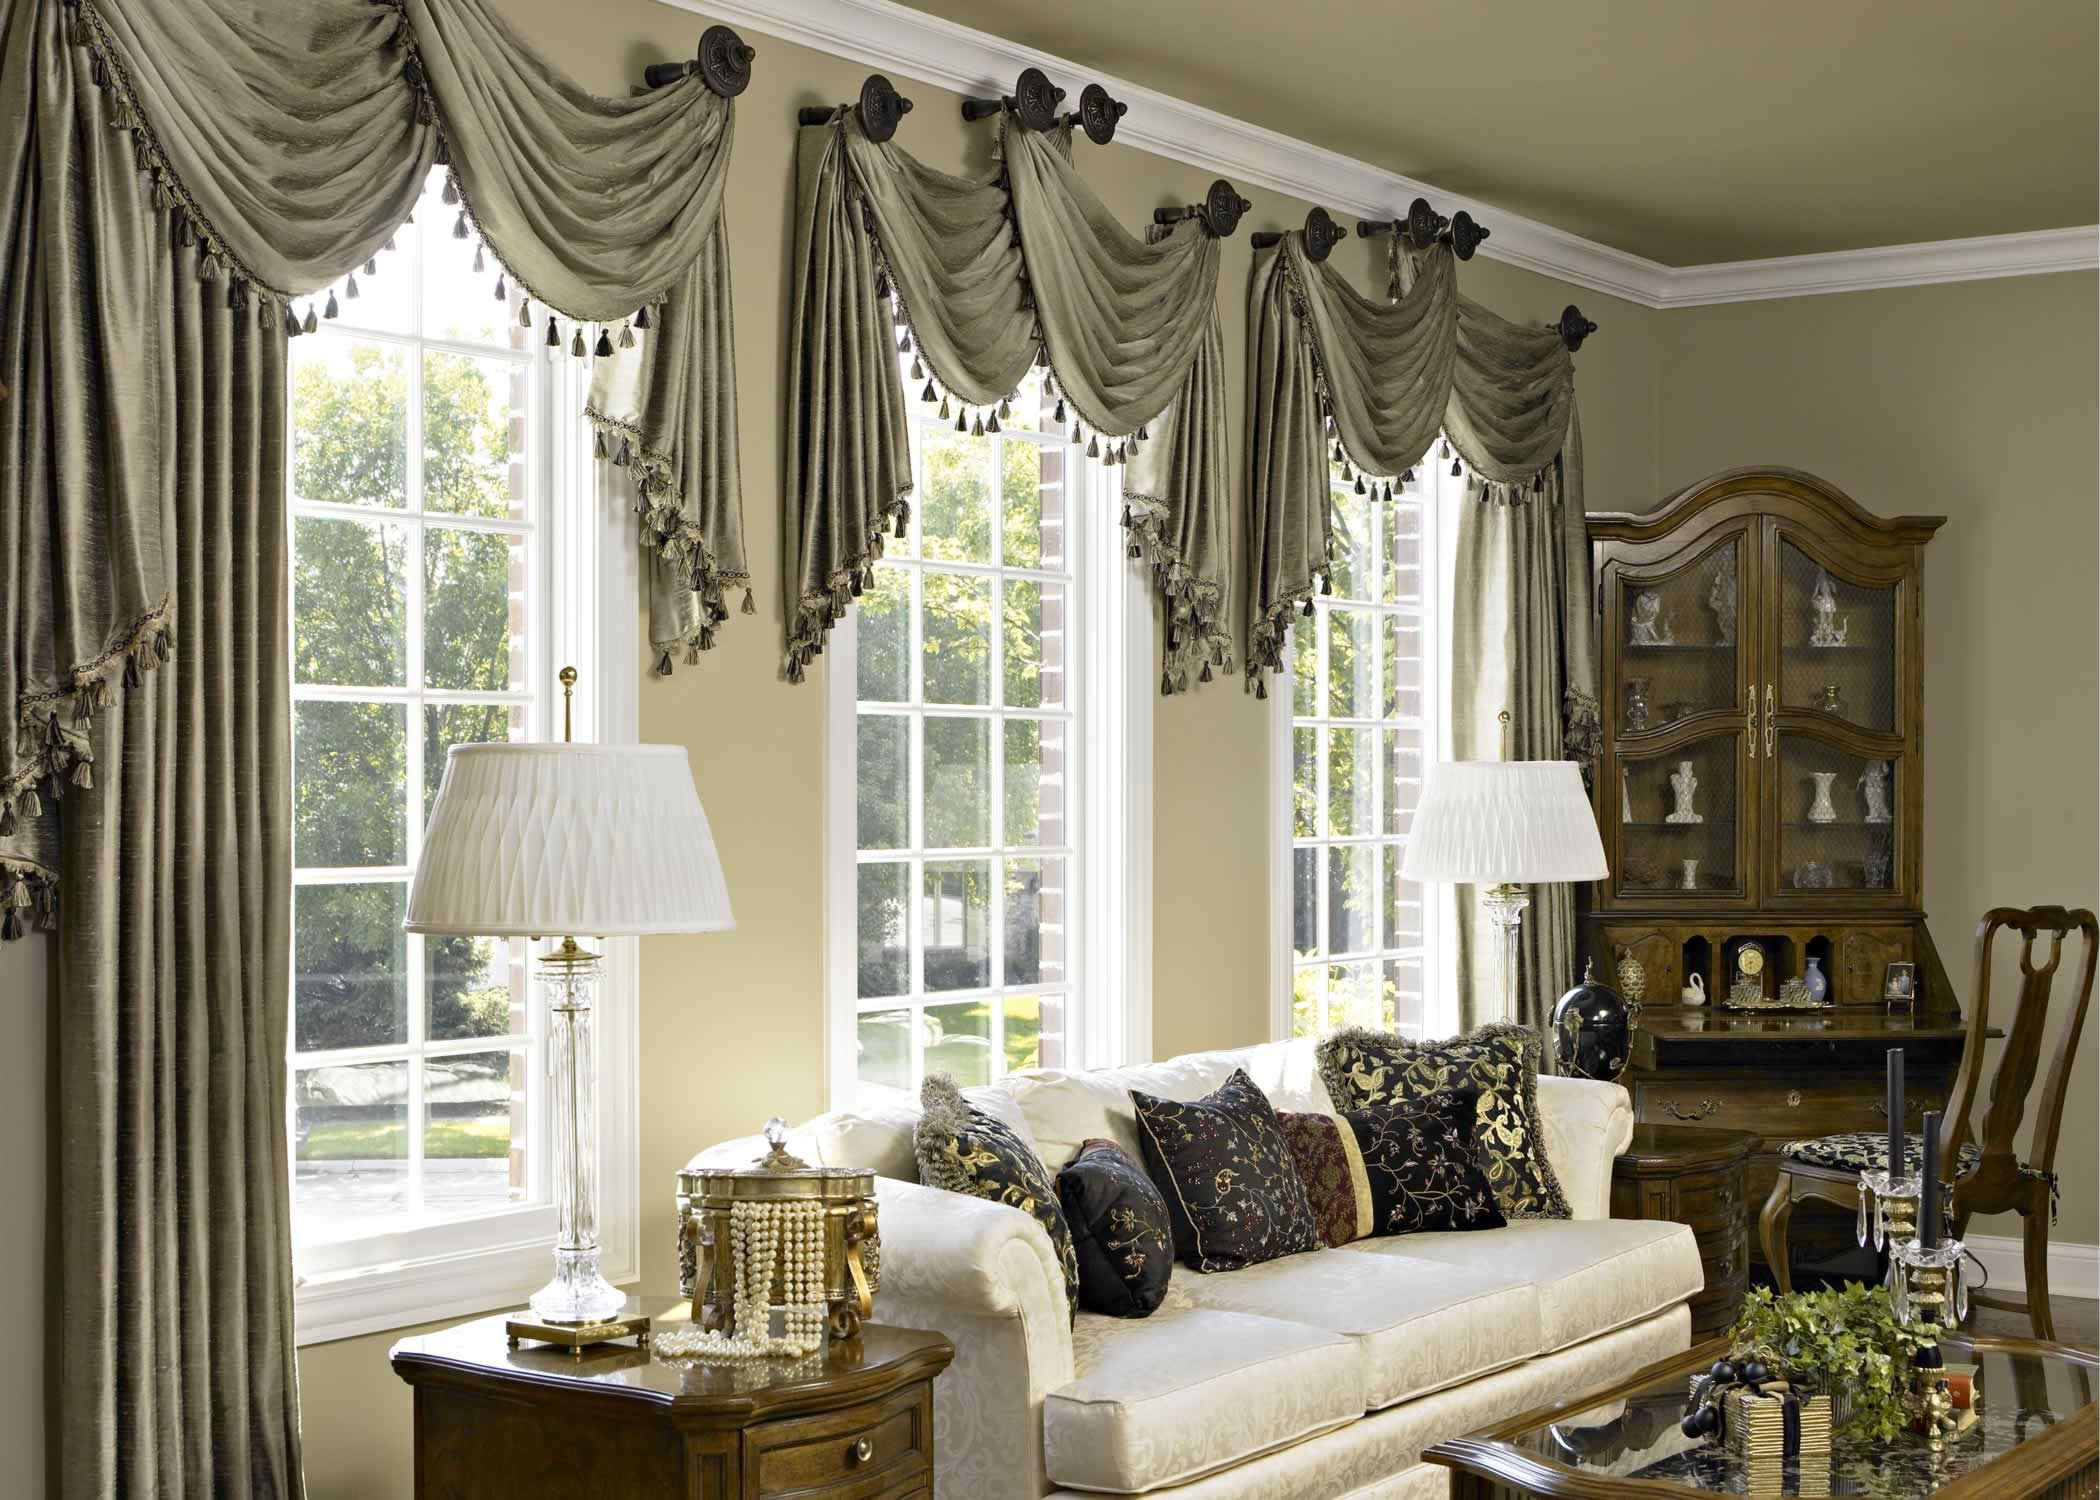 for valances suitable kitchen valance image ideas decor of window treatment best